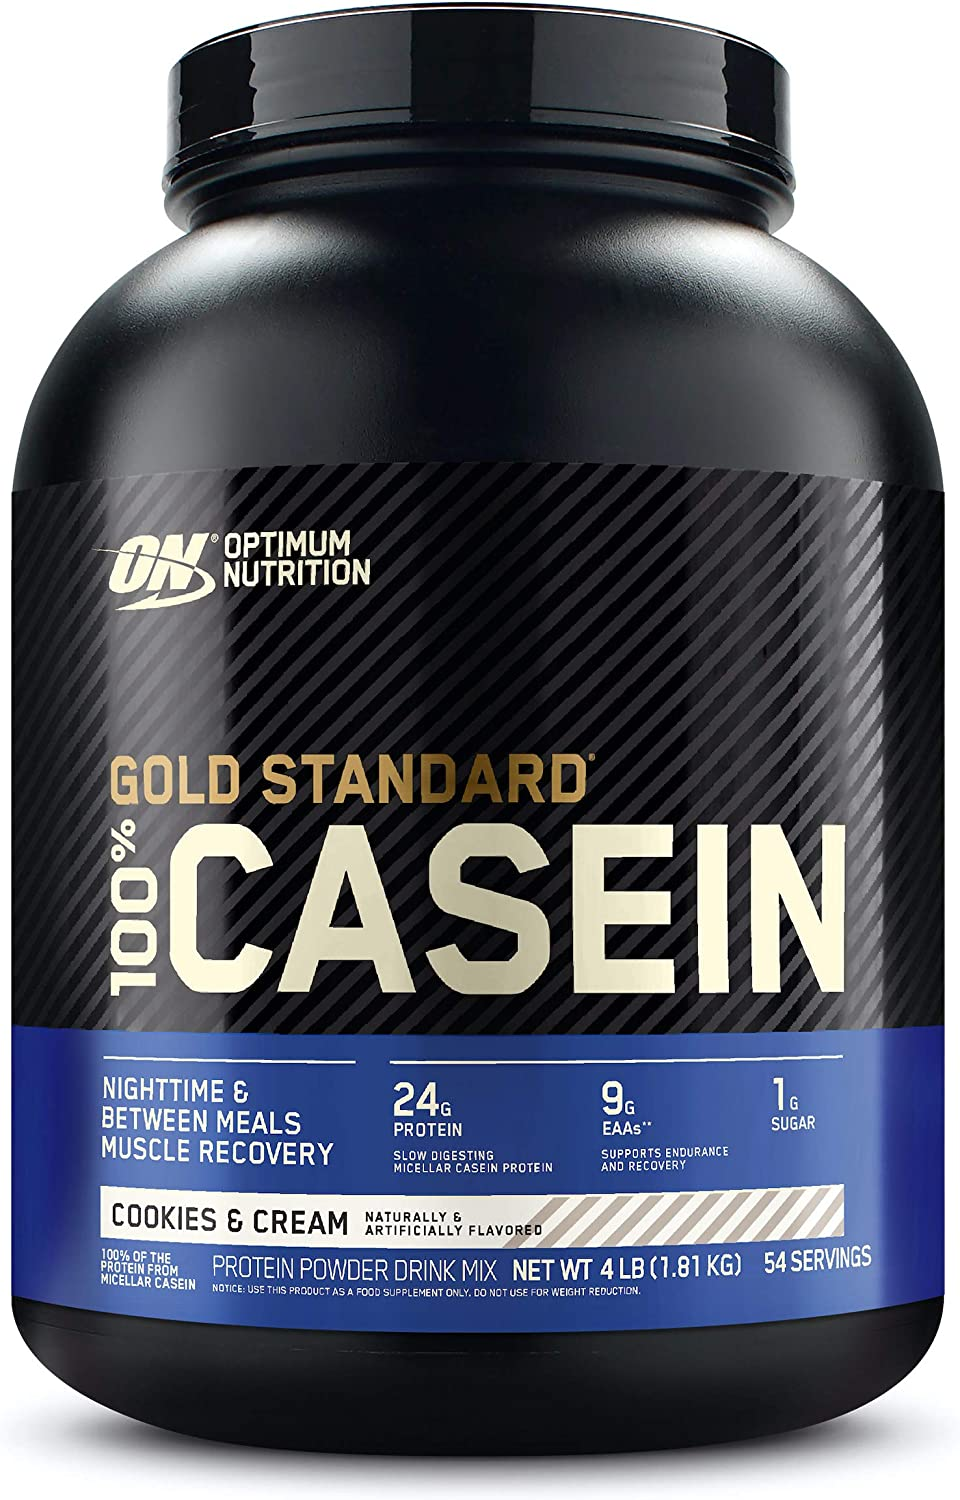 Optimum Nutrition Gold Standard 100% Micellar Casein Protein Powder, Slow Digesting, Helps Keep You Full, Overnight Muscle Recovery, Cookies and Cream, 4 Pound (Packaging May Vary): Health & Personal Care